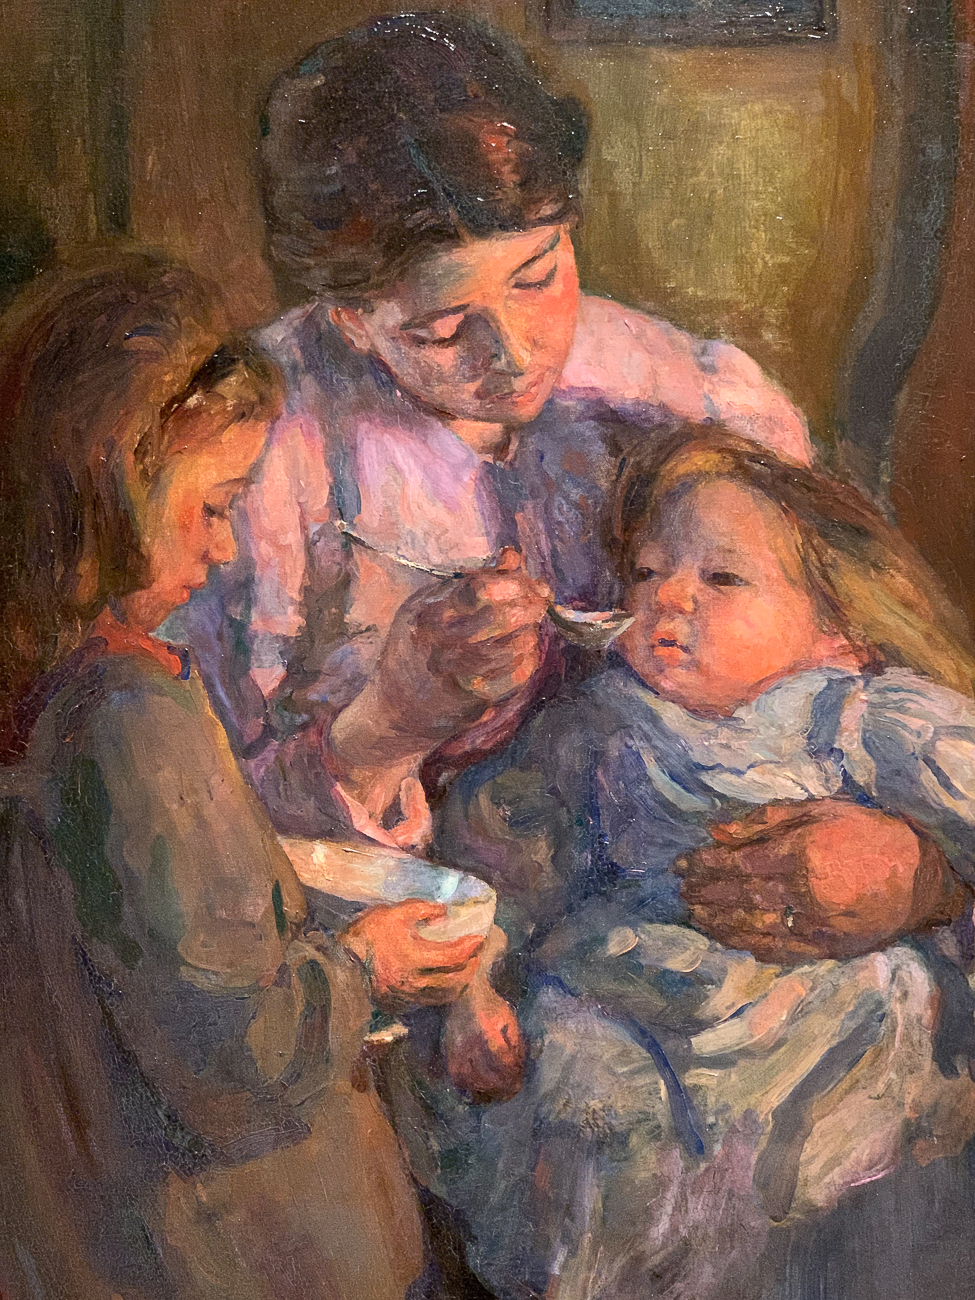 Painting by Elizabeth Nourse, 1907 / Image: Phil Armstrong, Cincinnati Refined // Published: 10.4.20